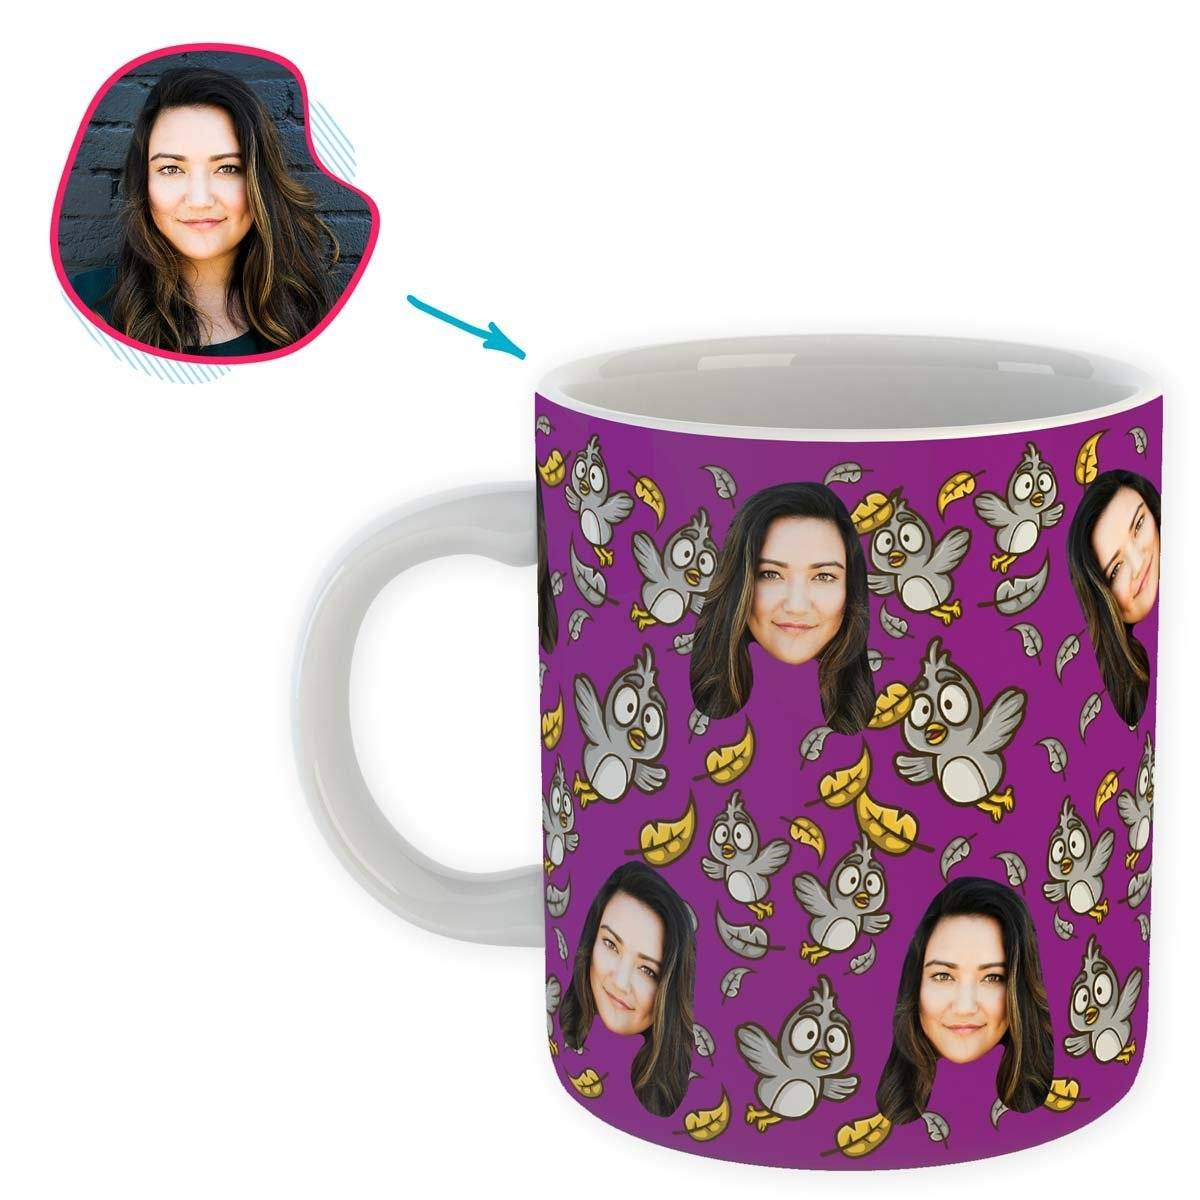 purple Bird mug personalized with photo of face printed on it